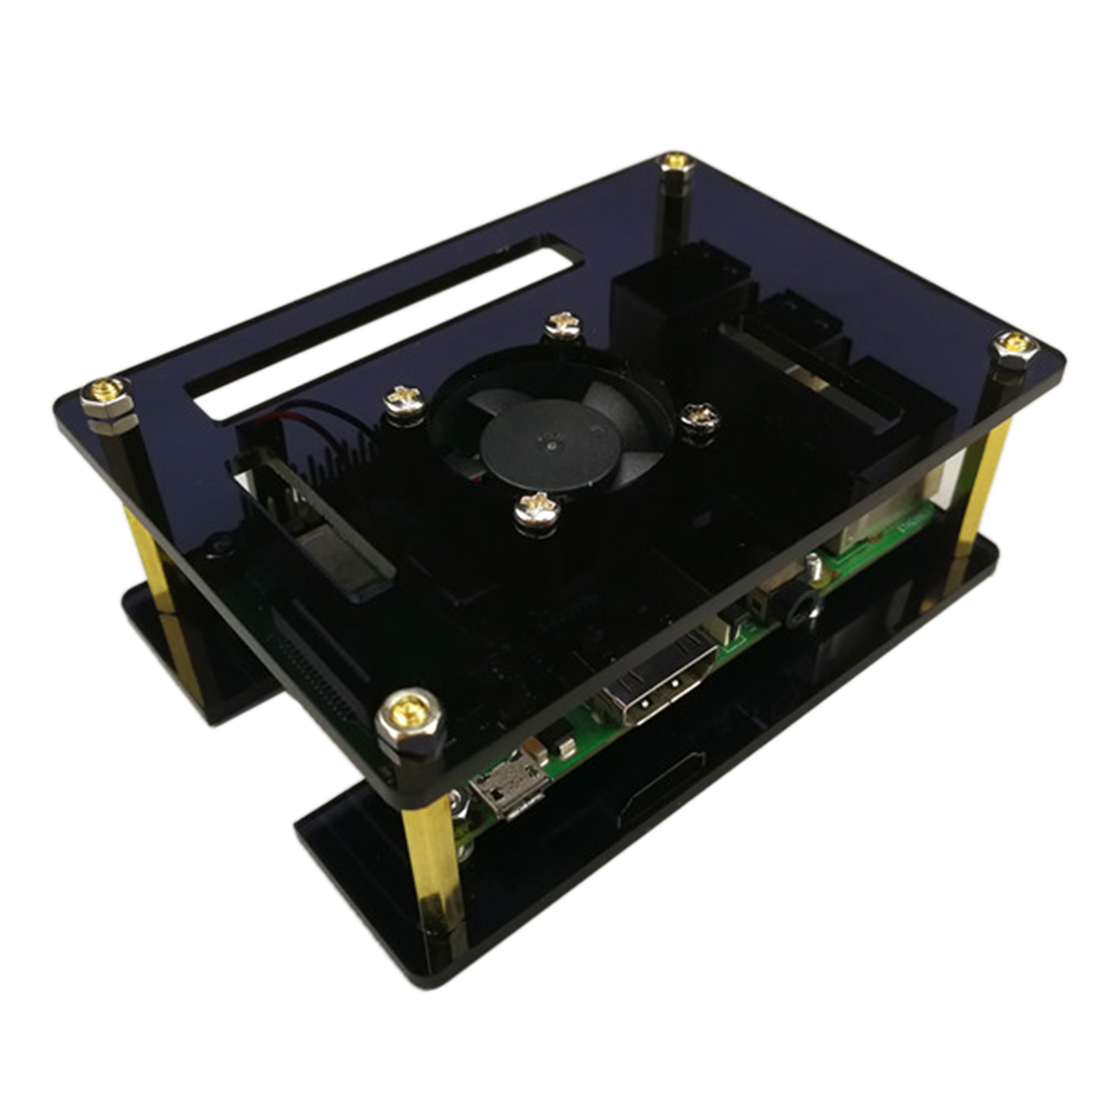 GT3A Acrylic Case With Cooling Fan For Raspberry Pi 4 Model B/3B+/3B/2B Men Programmable Toys Parts For Kids Adults New